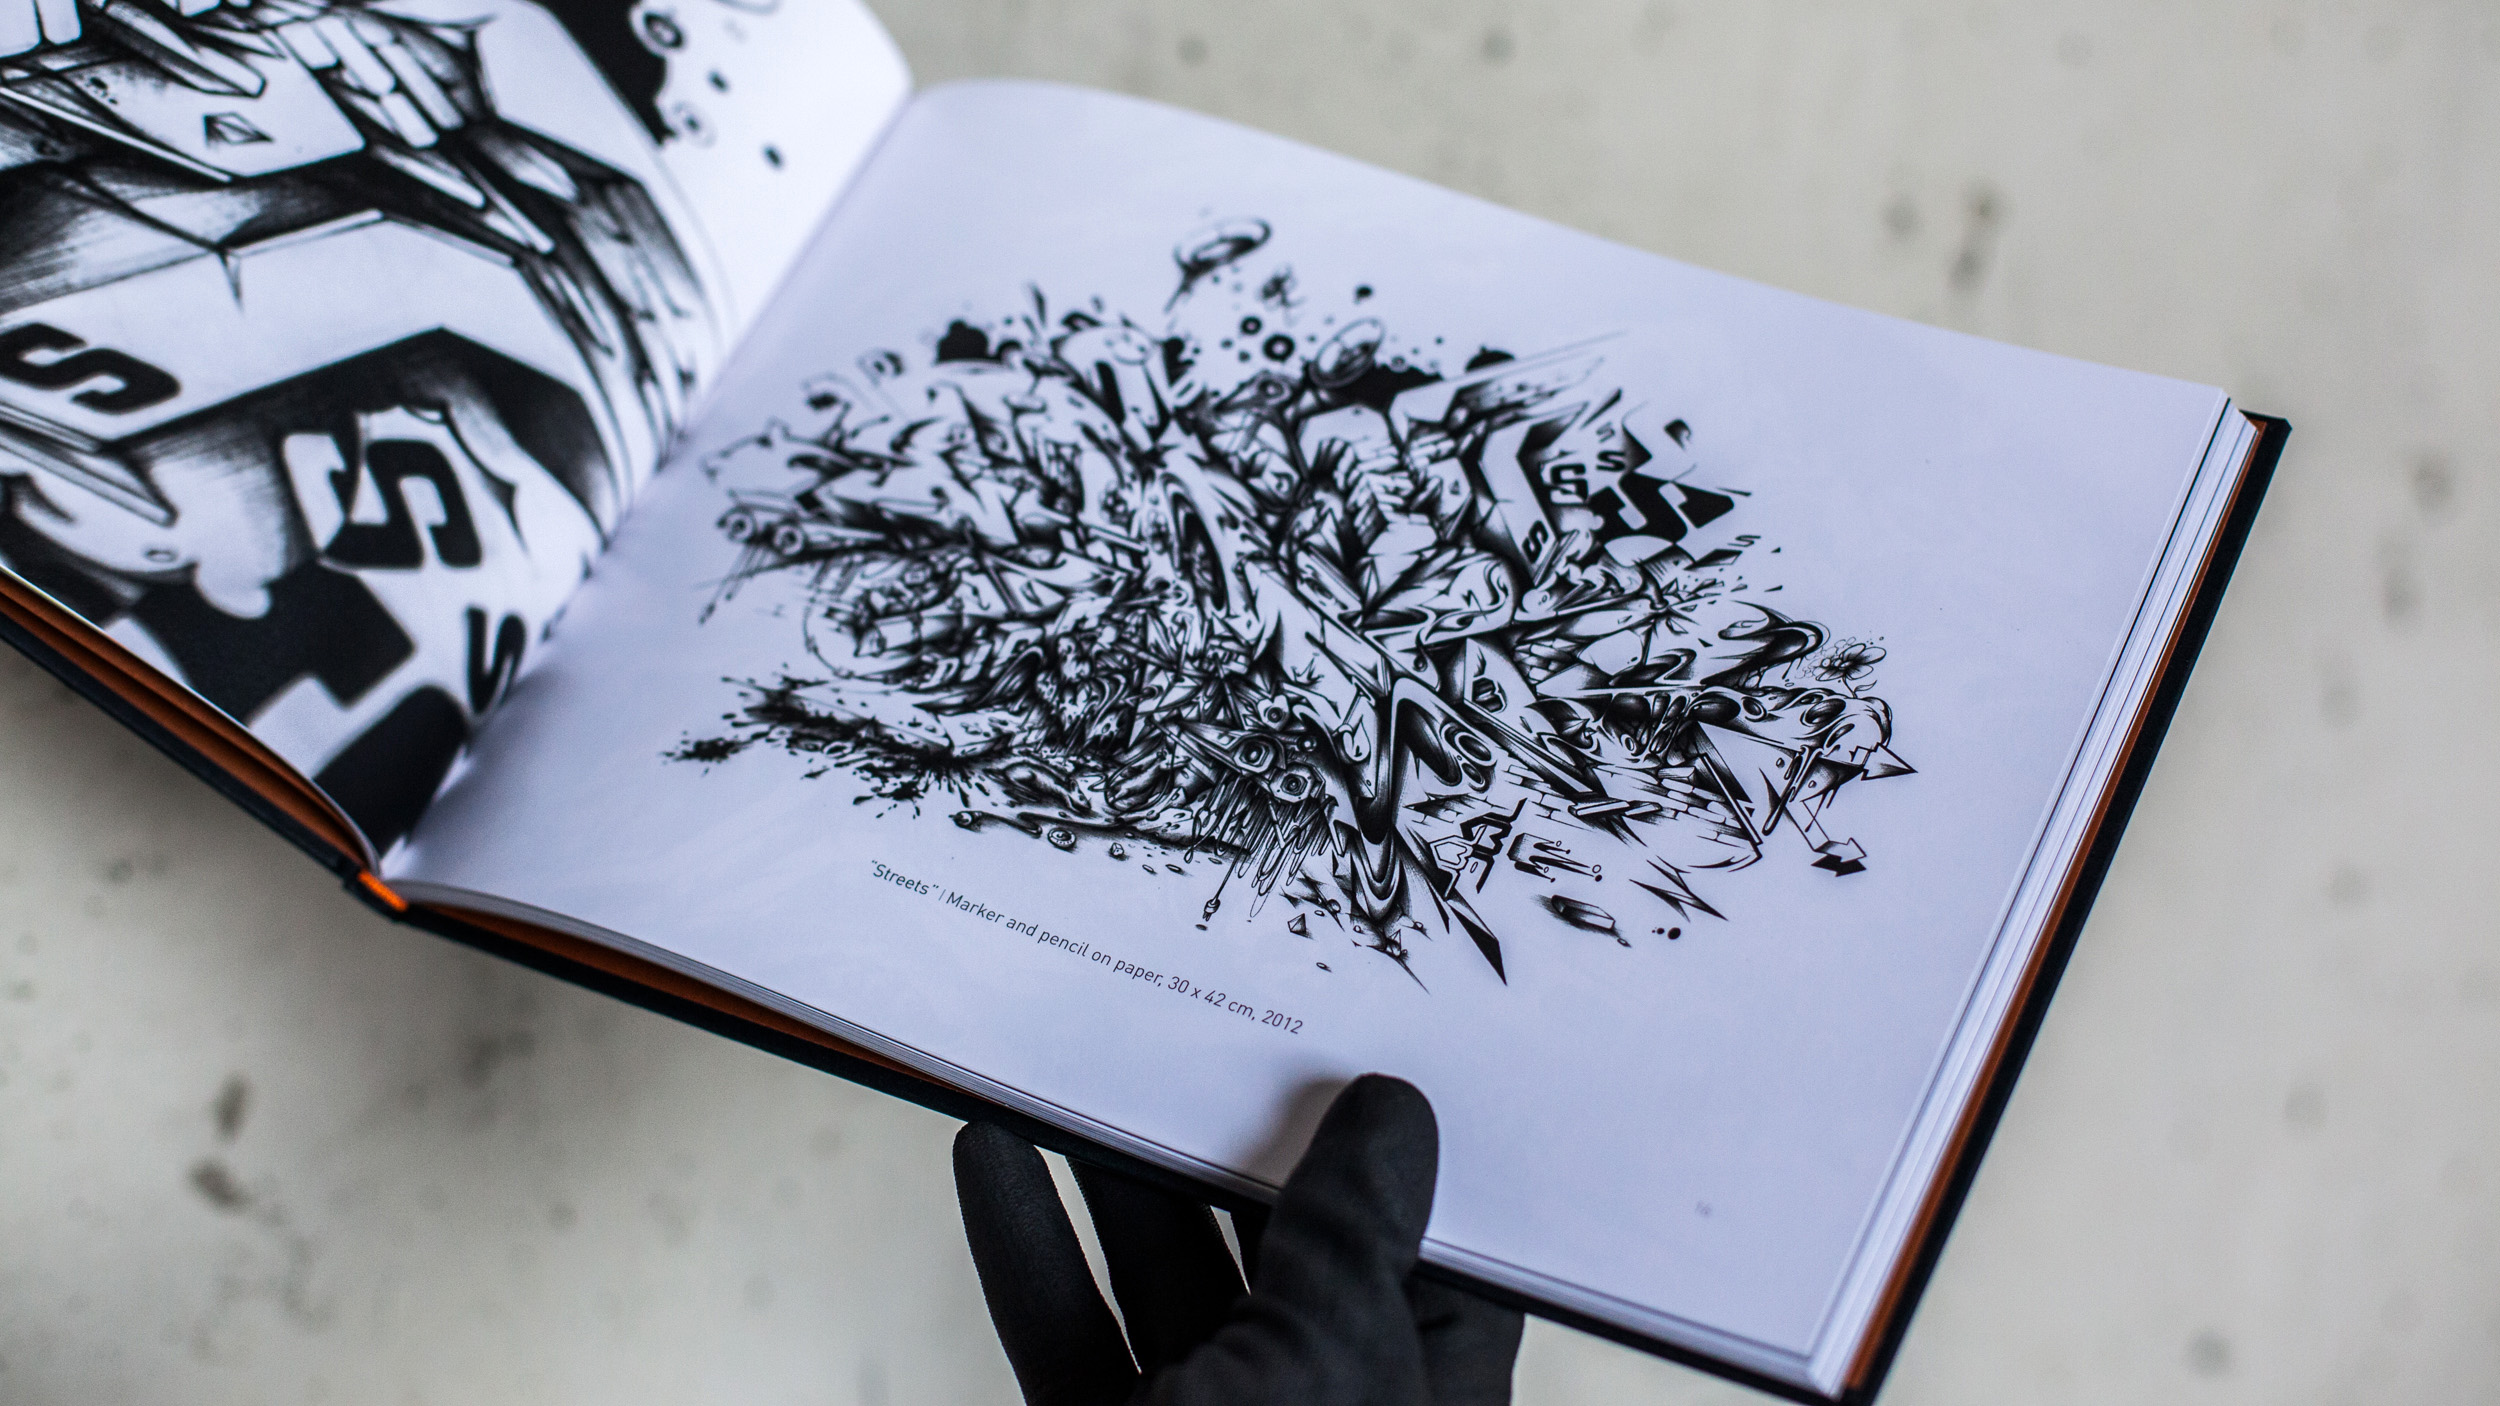 A work by Does - Qui facit creat book streets